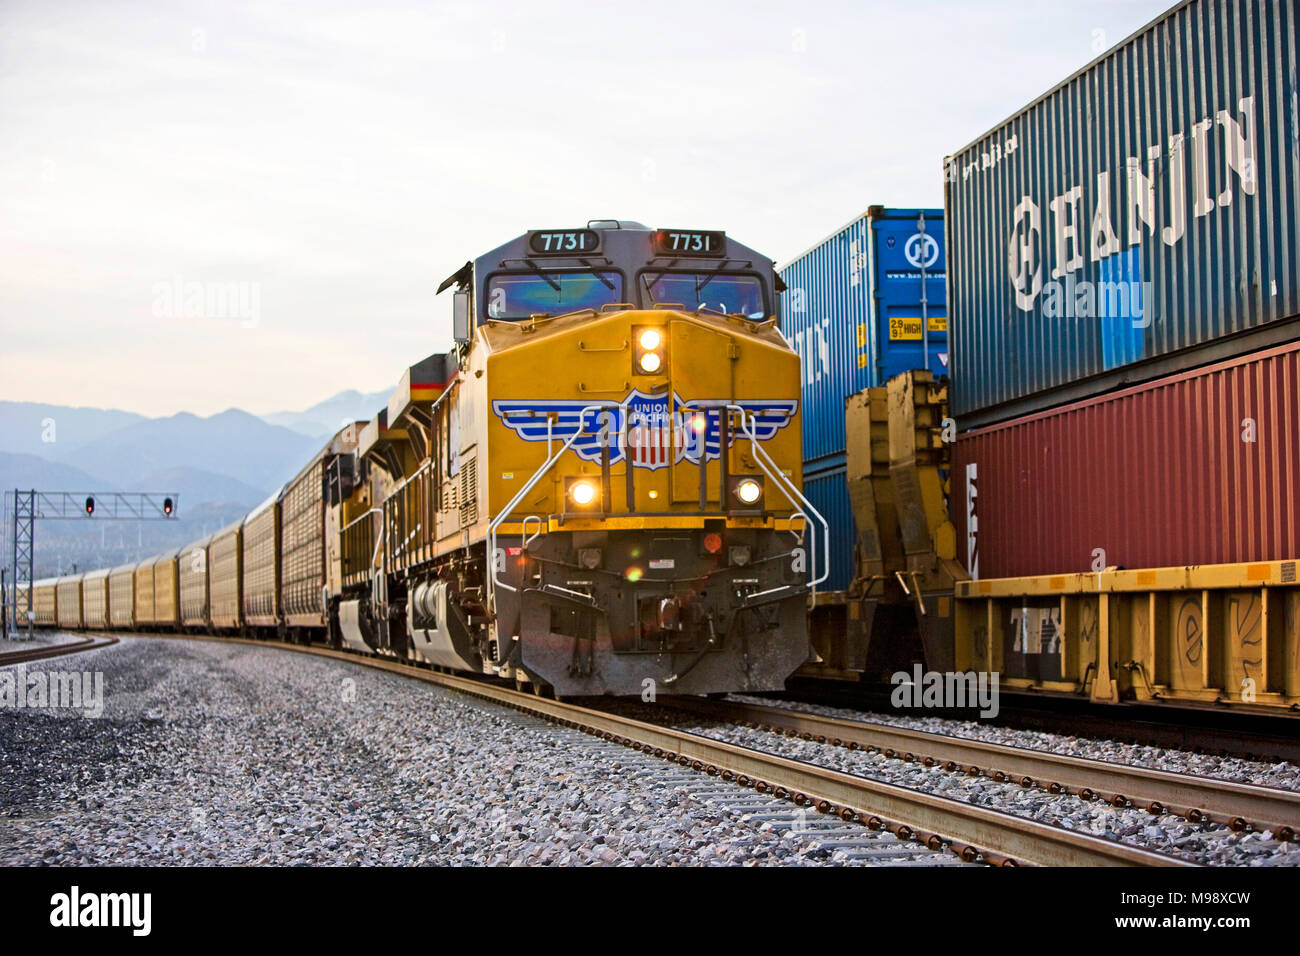 Freight train moves through the Coachella valley of southern California pulled by a string of union pacific diesel locomotives - Stock Image